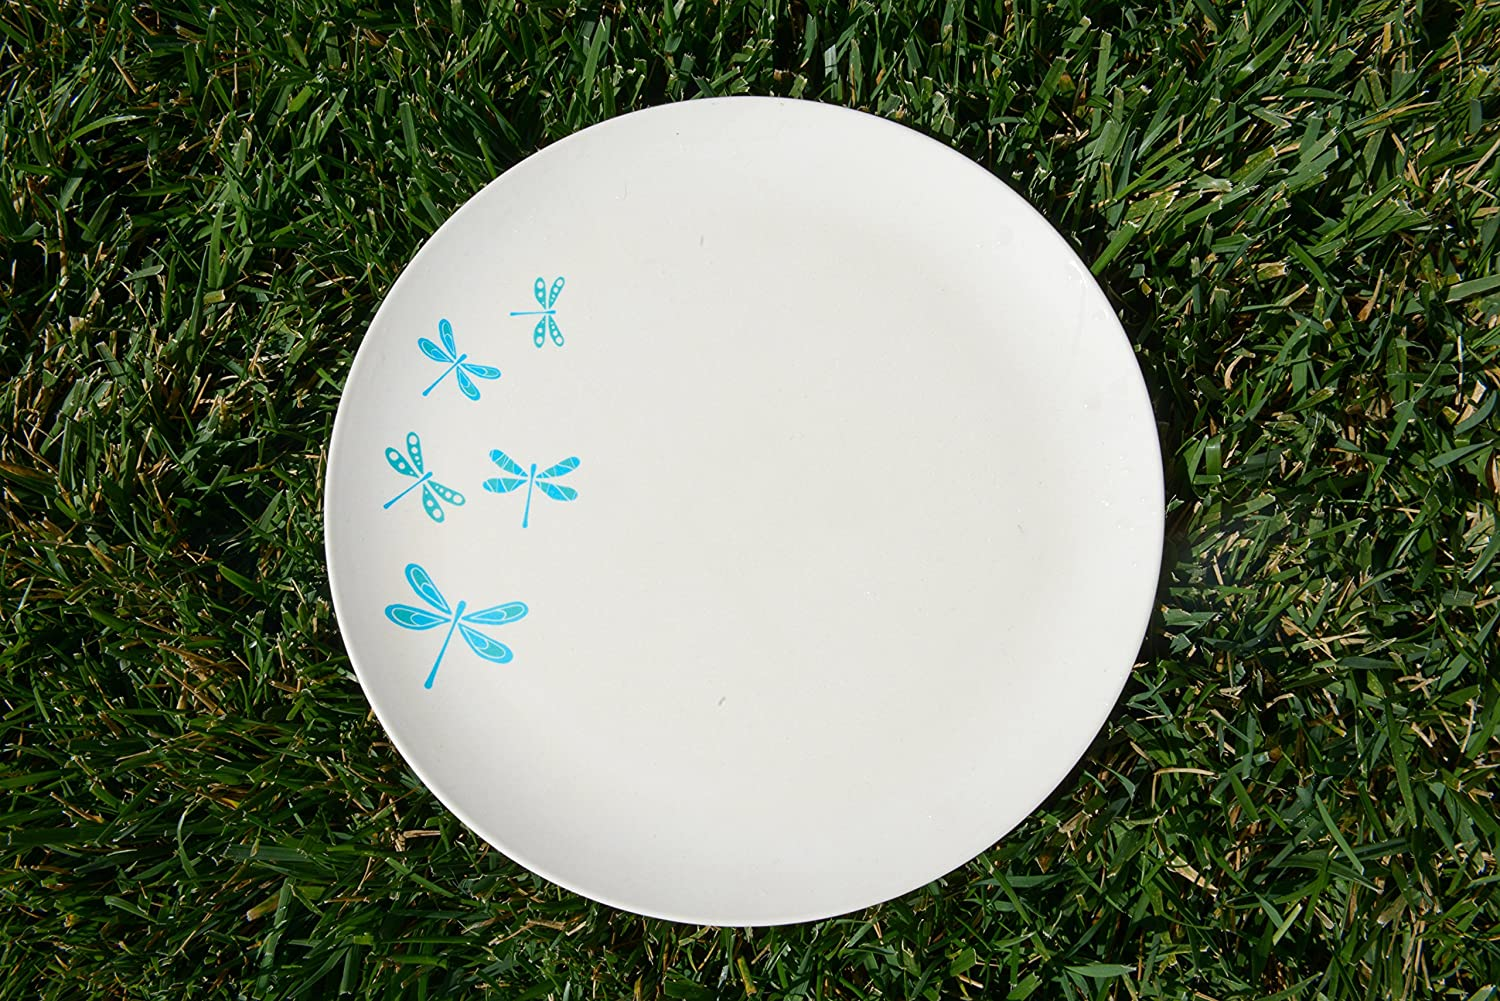 Top 100+ Dinner Plates With Fish Design